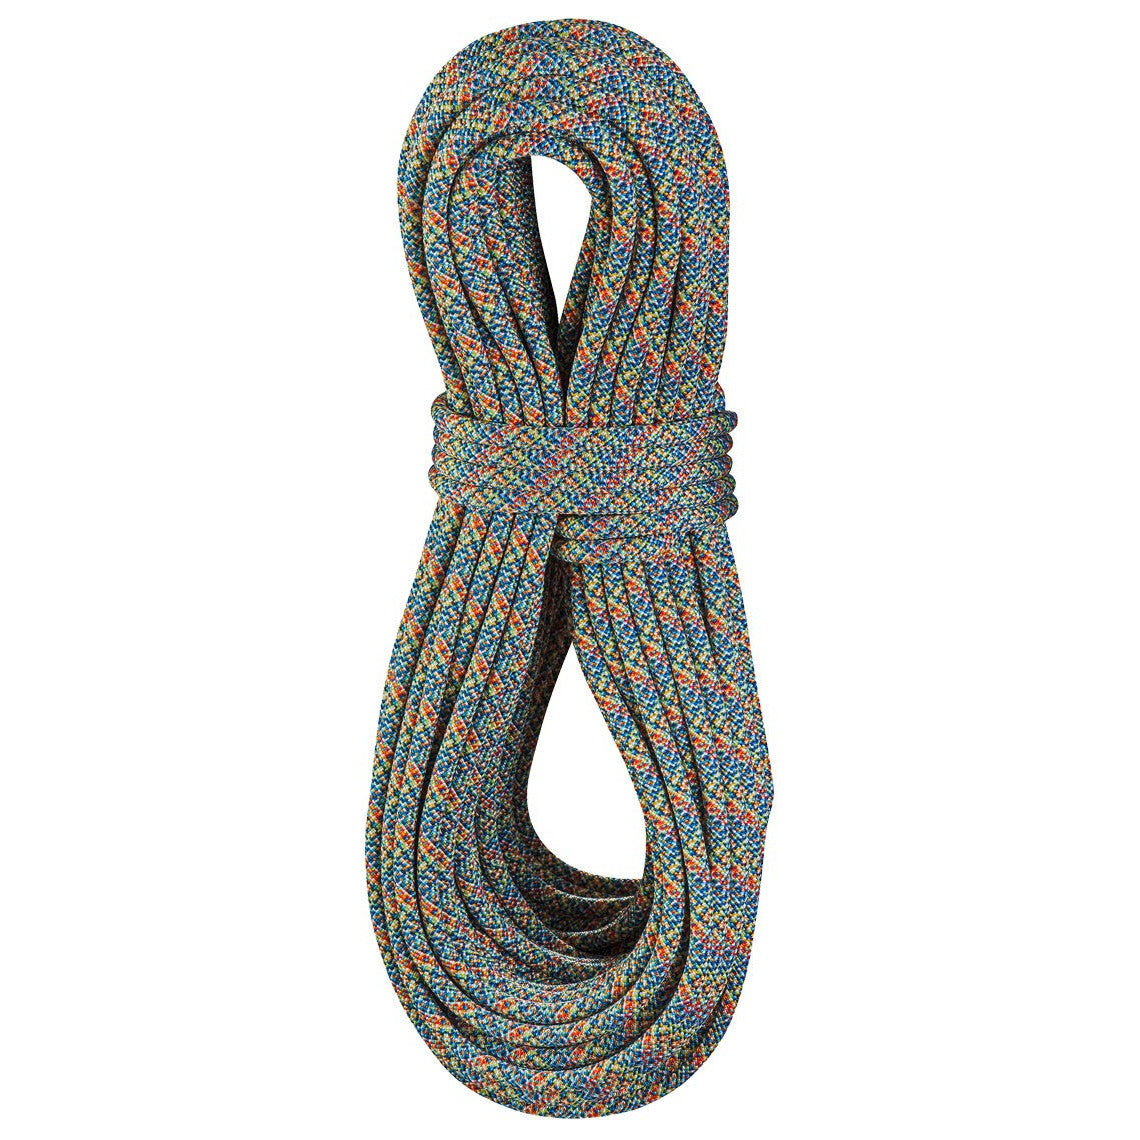 Edelrid Parrot 9.8 x 60m climbing rope